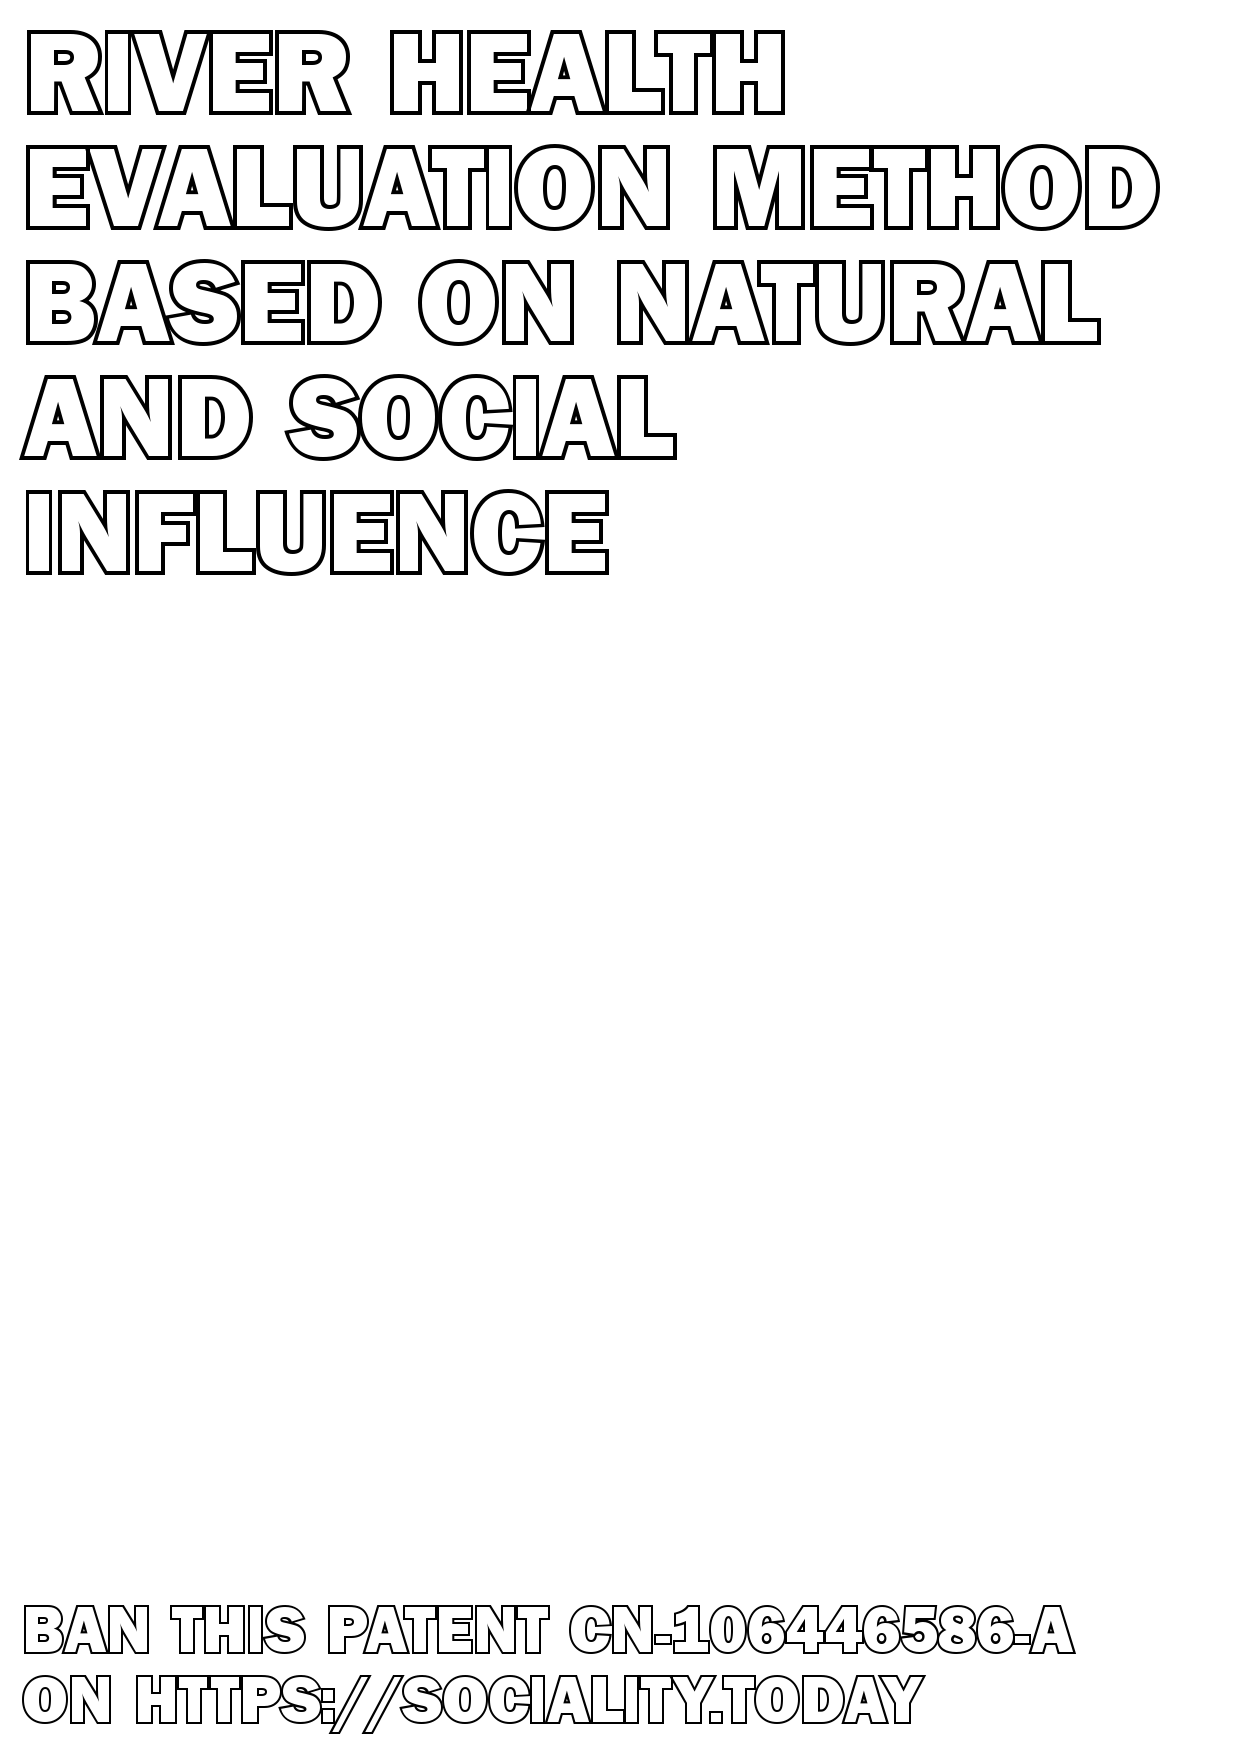 River health evaluation method based on natural and social influence  - CN-106446586-A